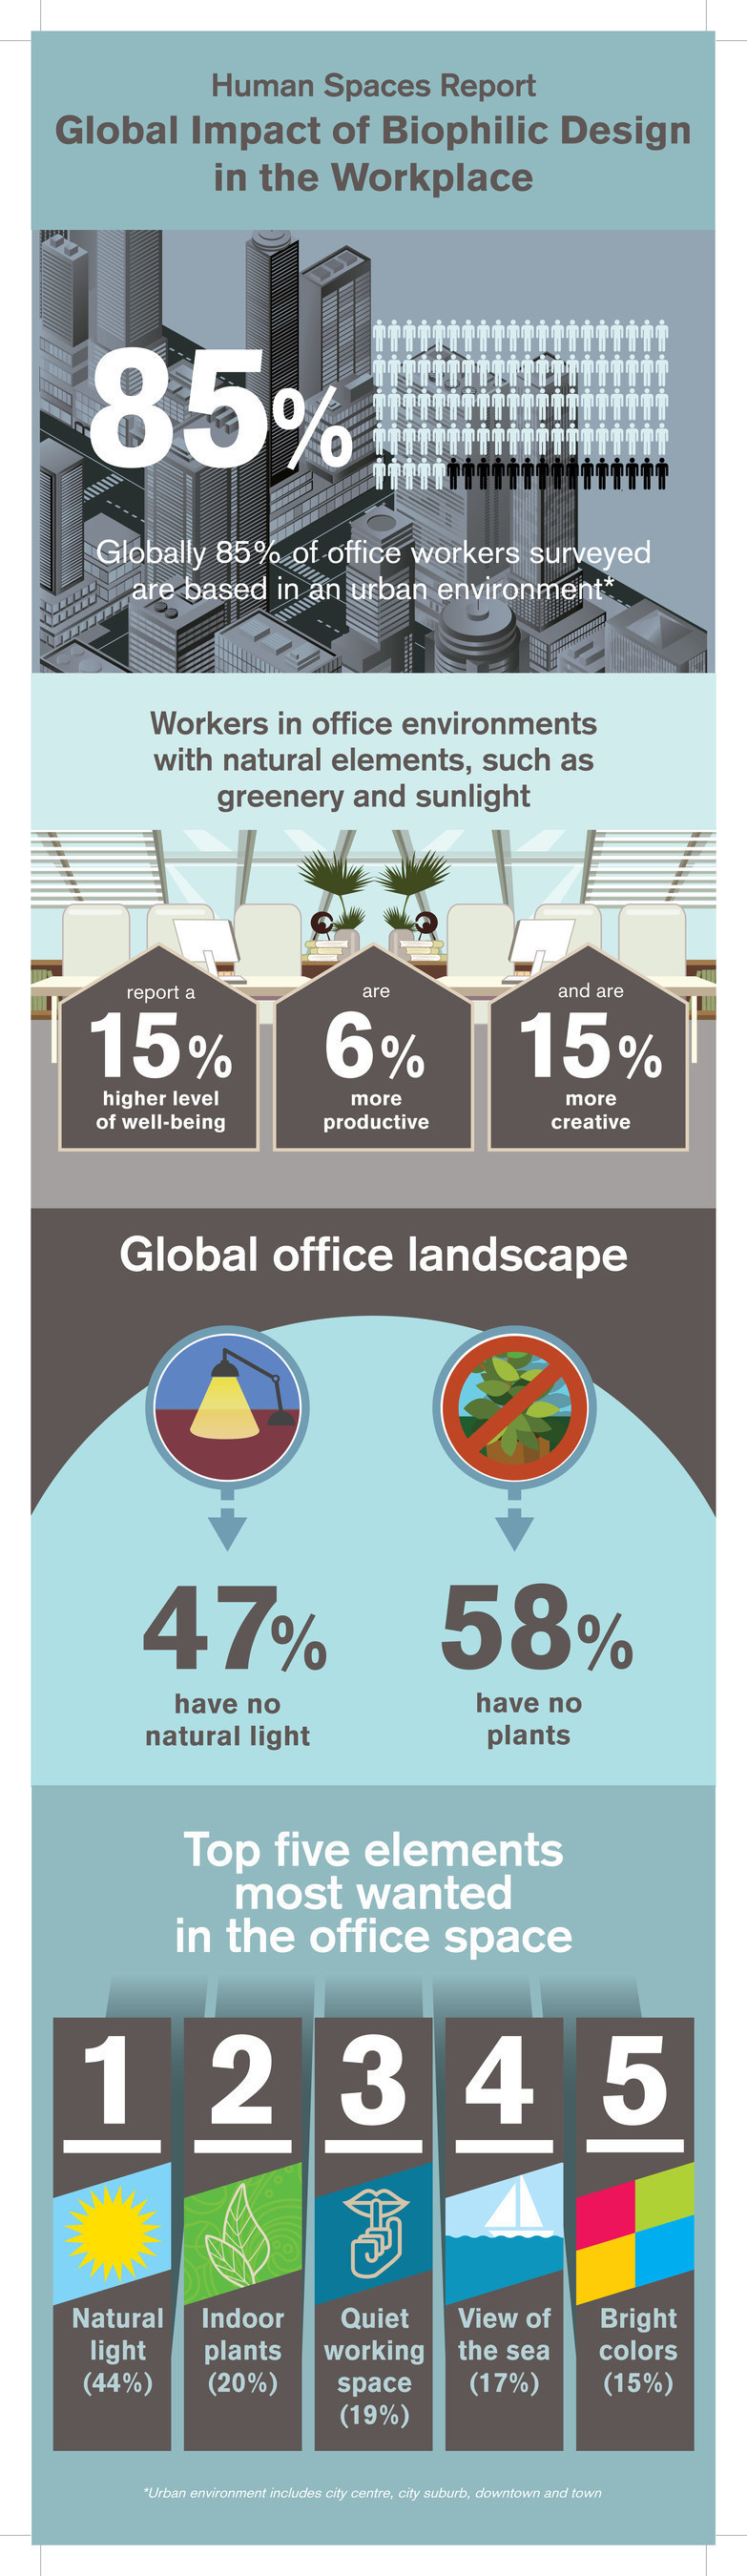 Human Spaces infographic